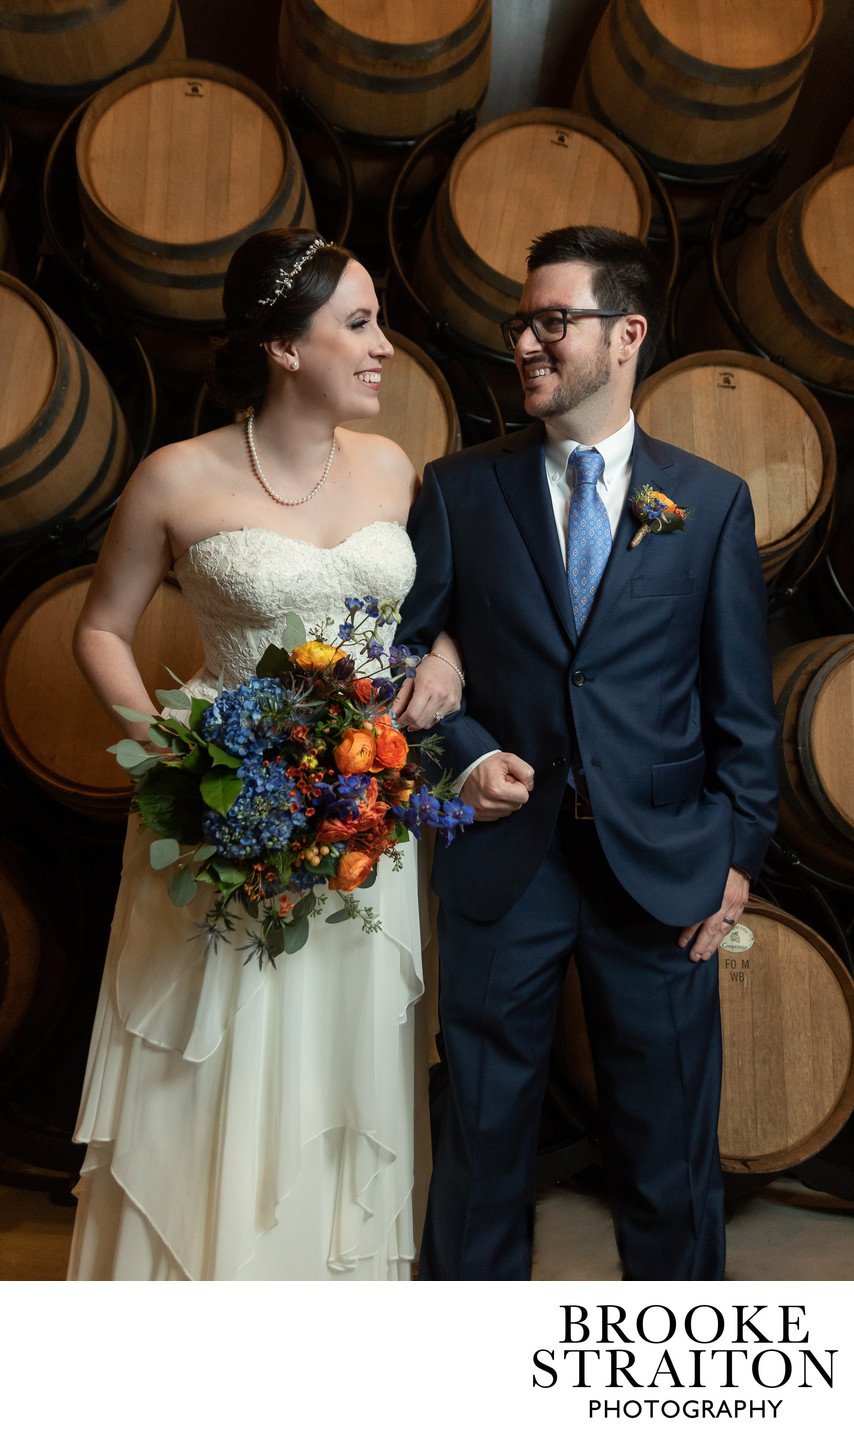 The barrel room with bride and groom